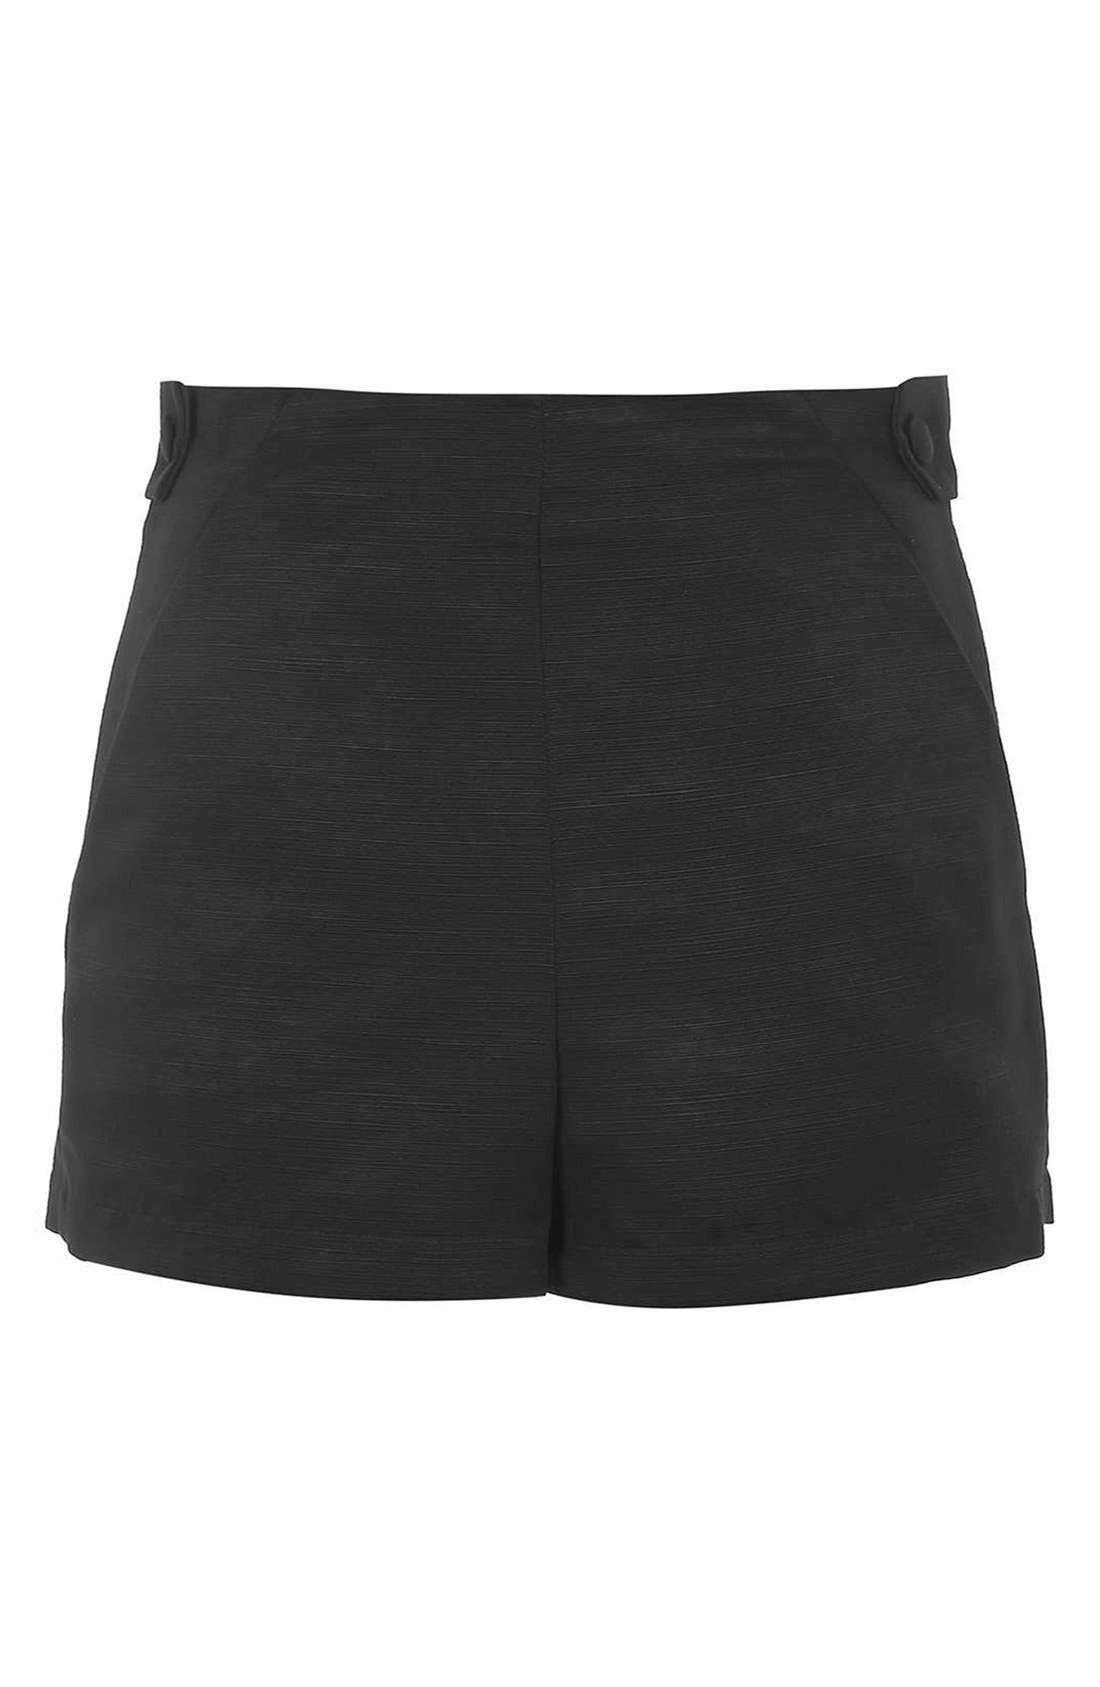 Alternate Image 3  - Topshop High Rise Button Tab Shorts